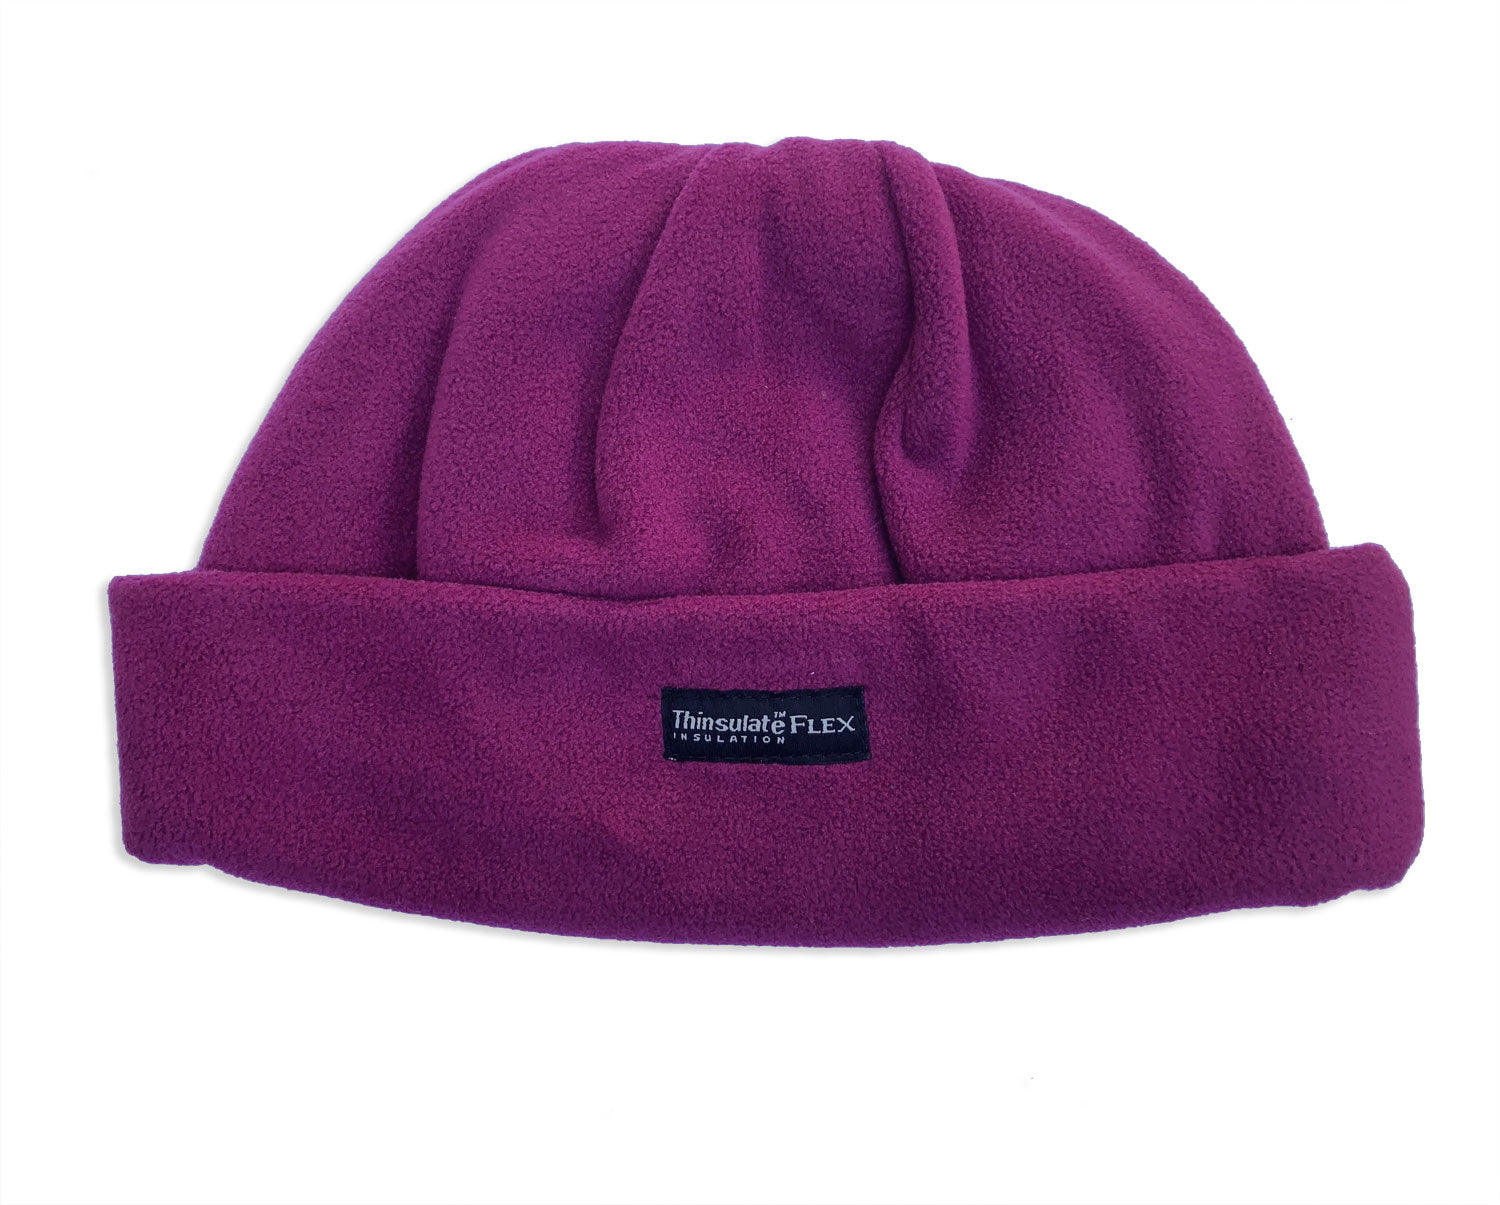 Raspberry Gelert Thinsulate Fleece Hat